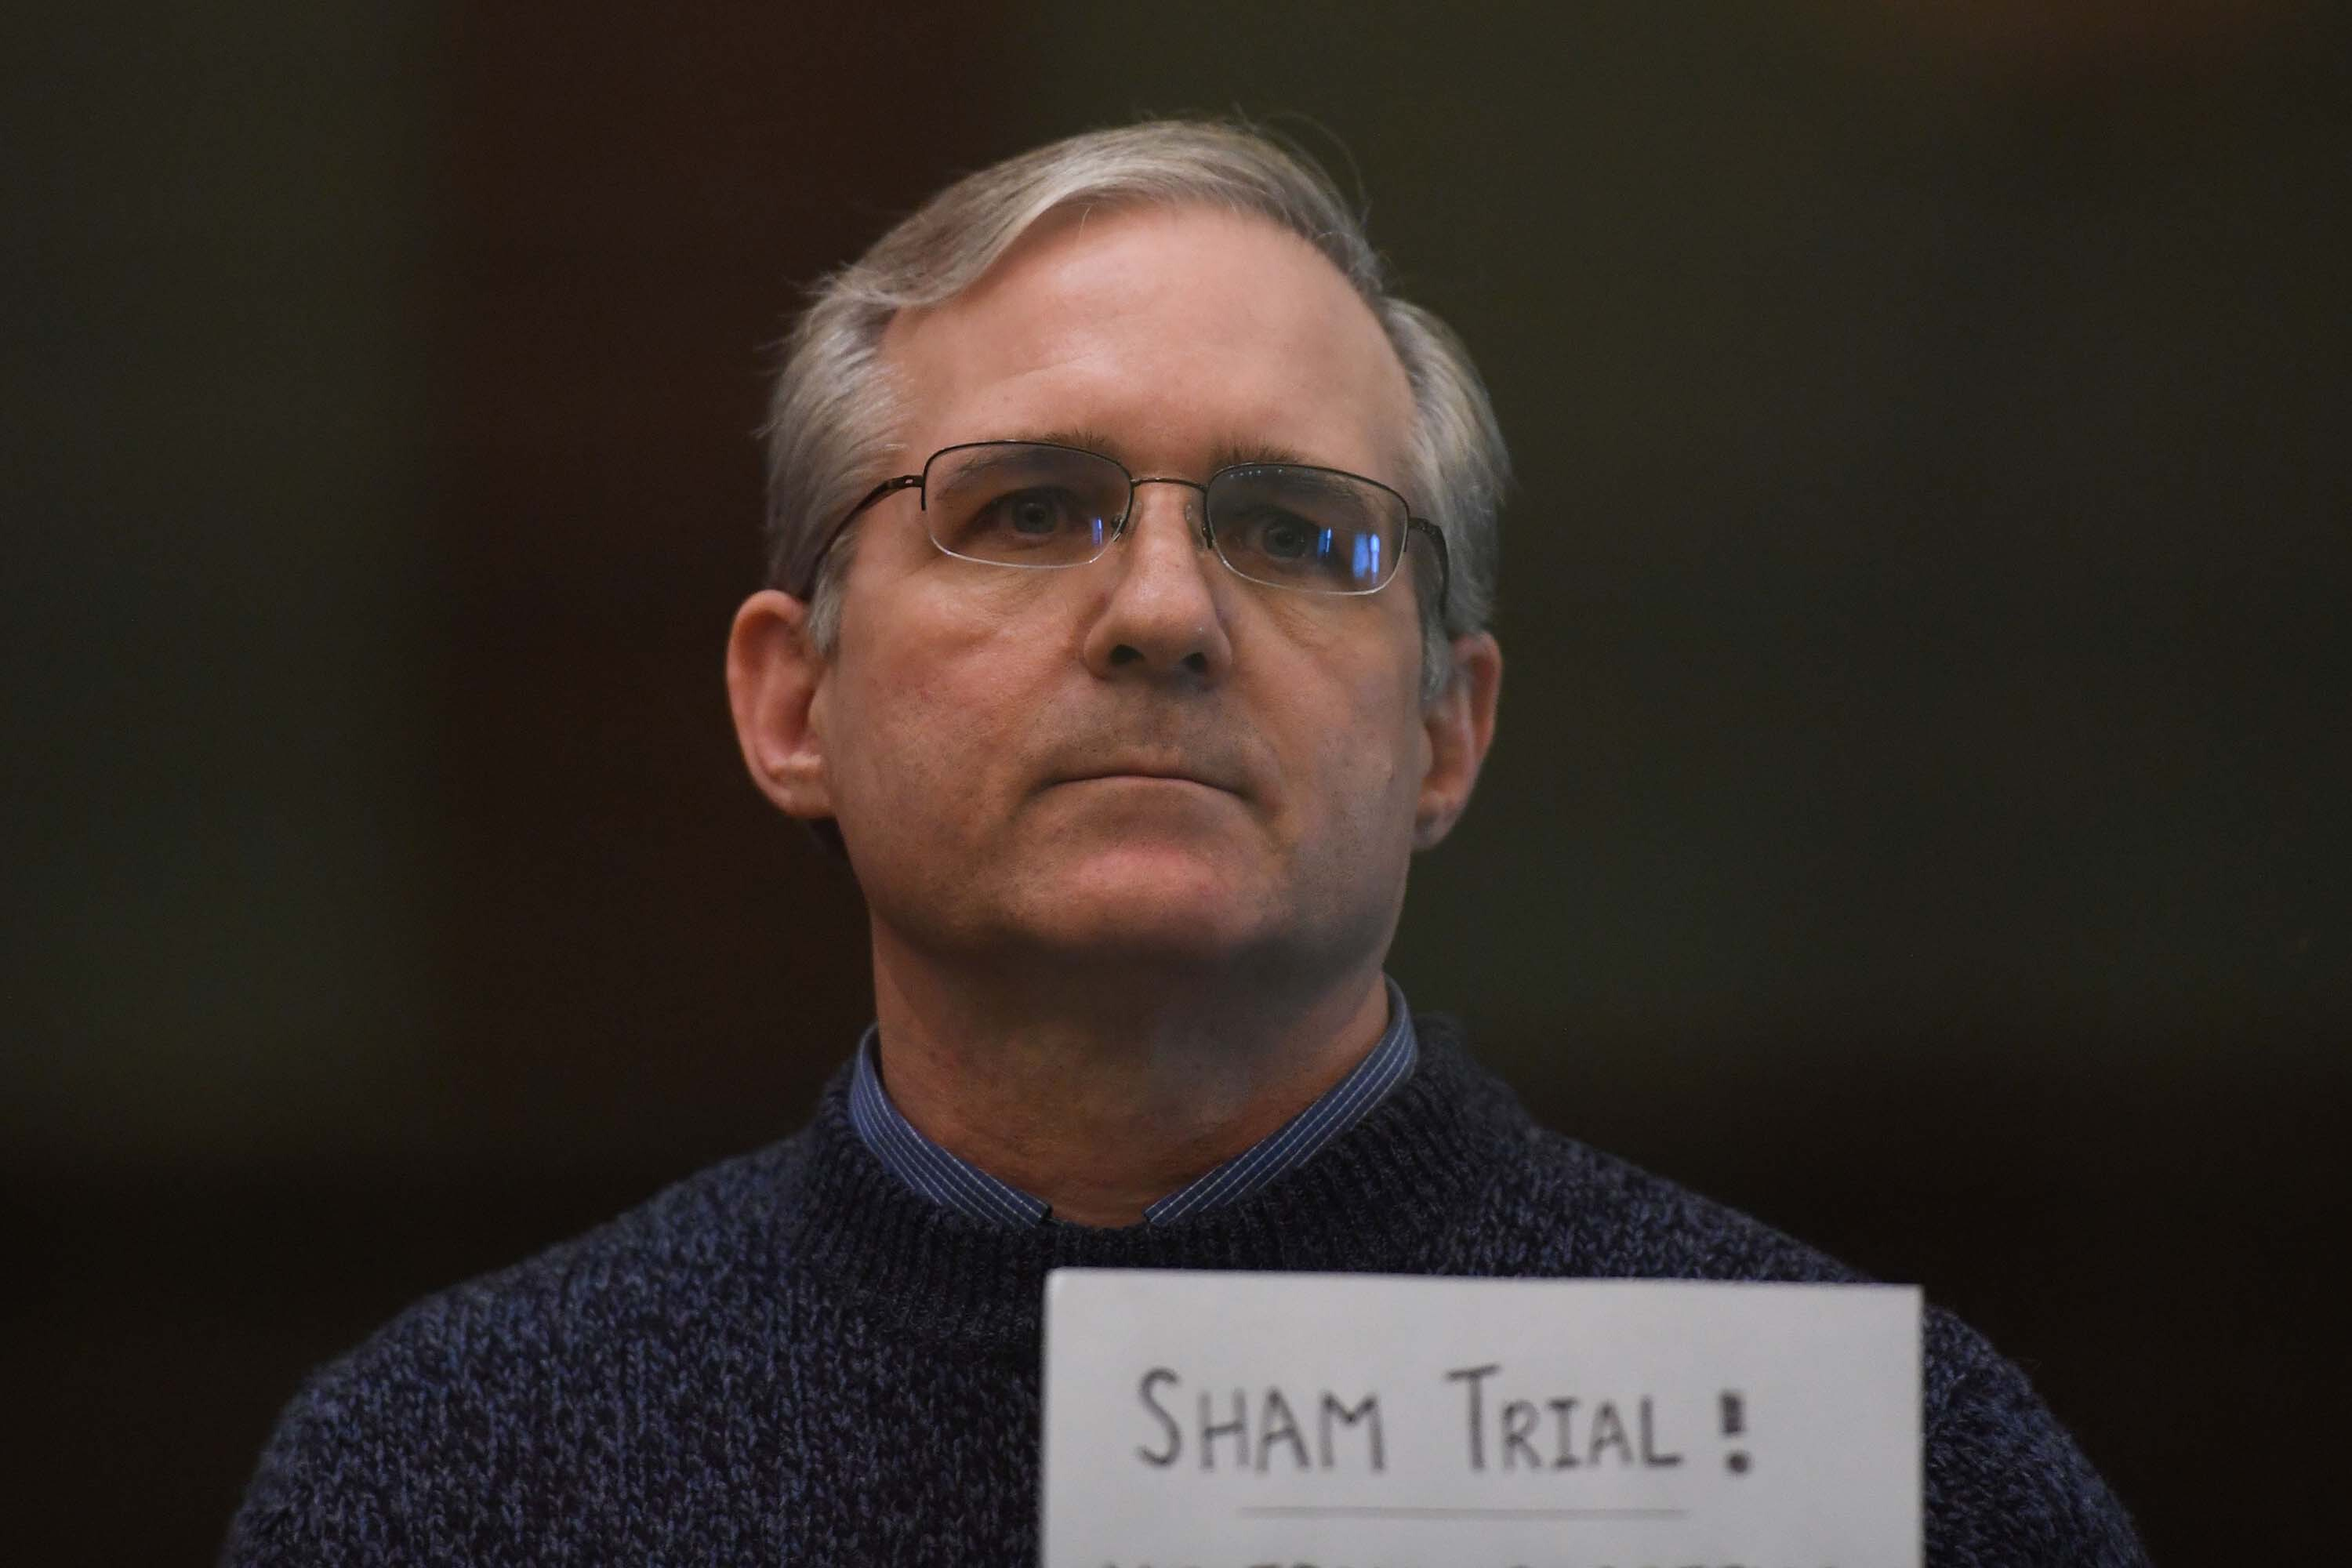 Paul Whelan returns to Russian labor camp after being sent to medical facility